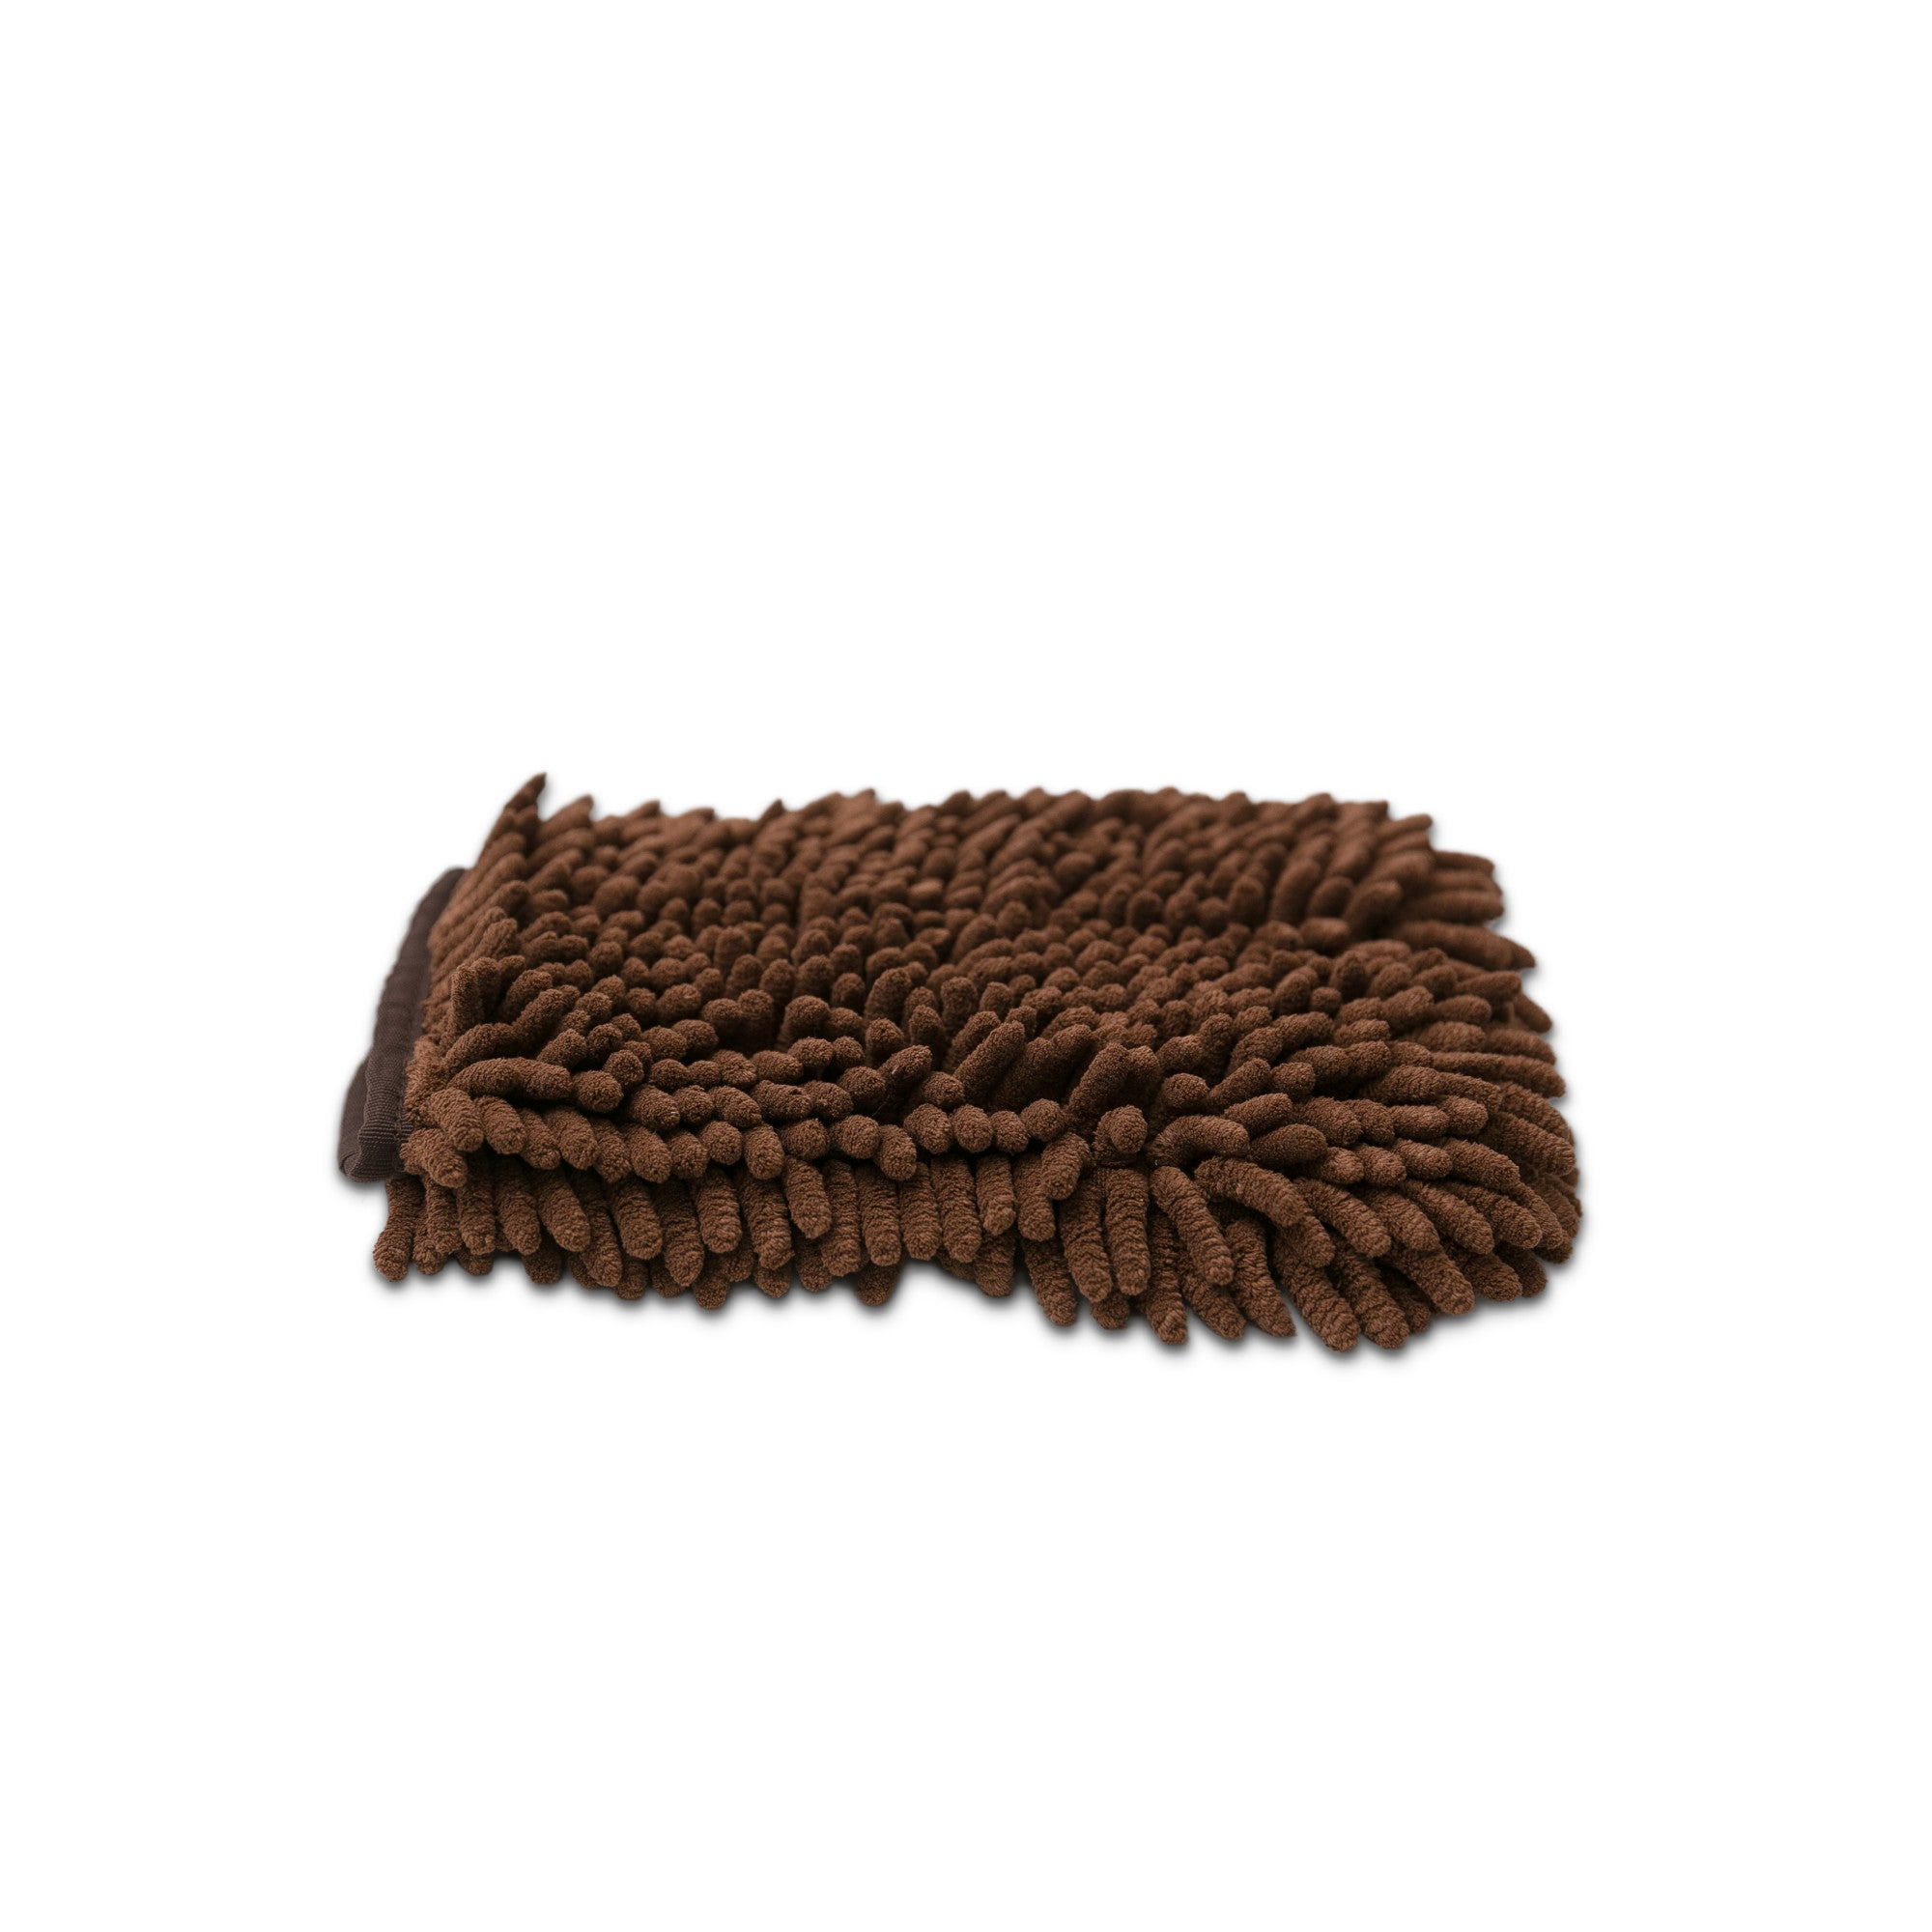 e93f5059aa37 Pet Cleaning & Bathing Mitt - Safe & Chemical-Free for Dogs, Horses,